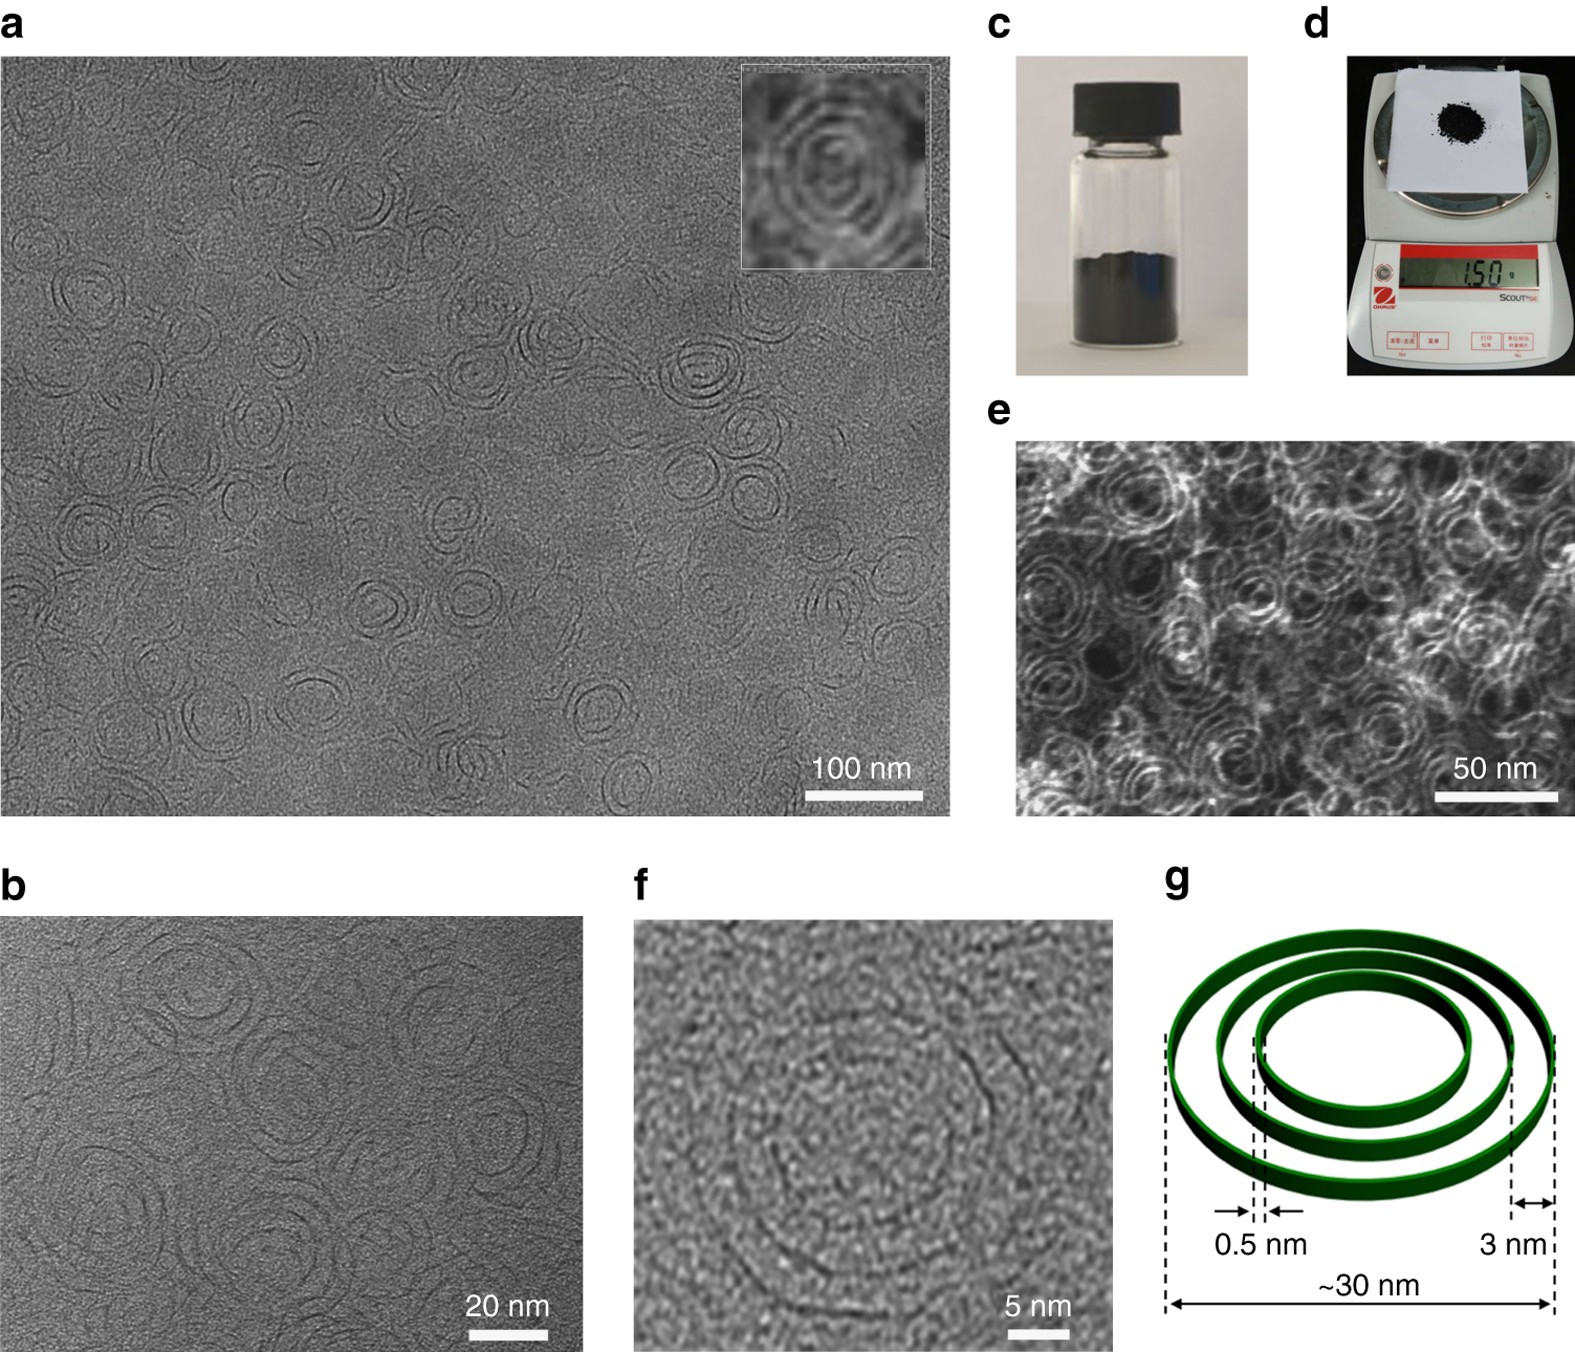 Atomic Level Molybdenum Oxide Nanorings With Full Spectrum